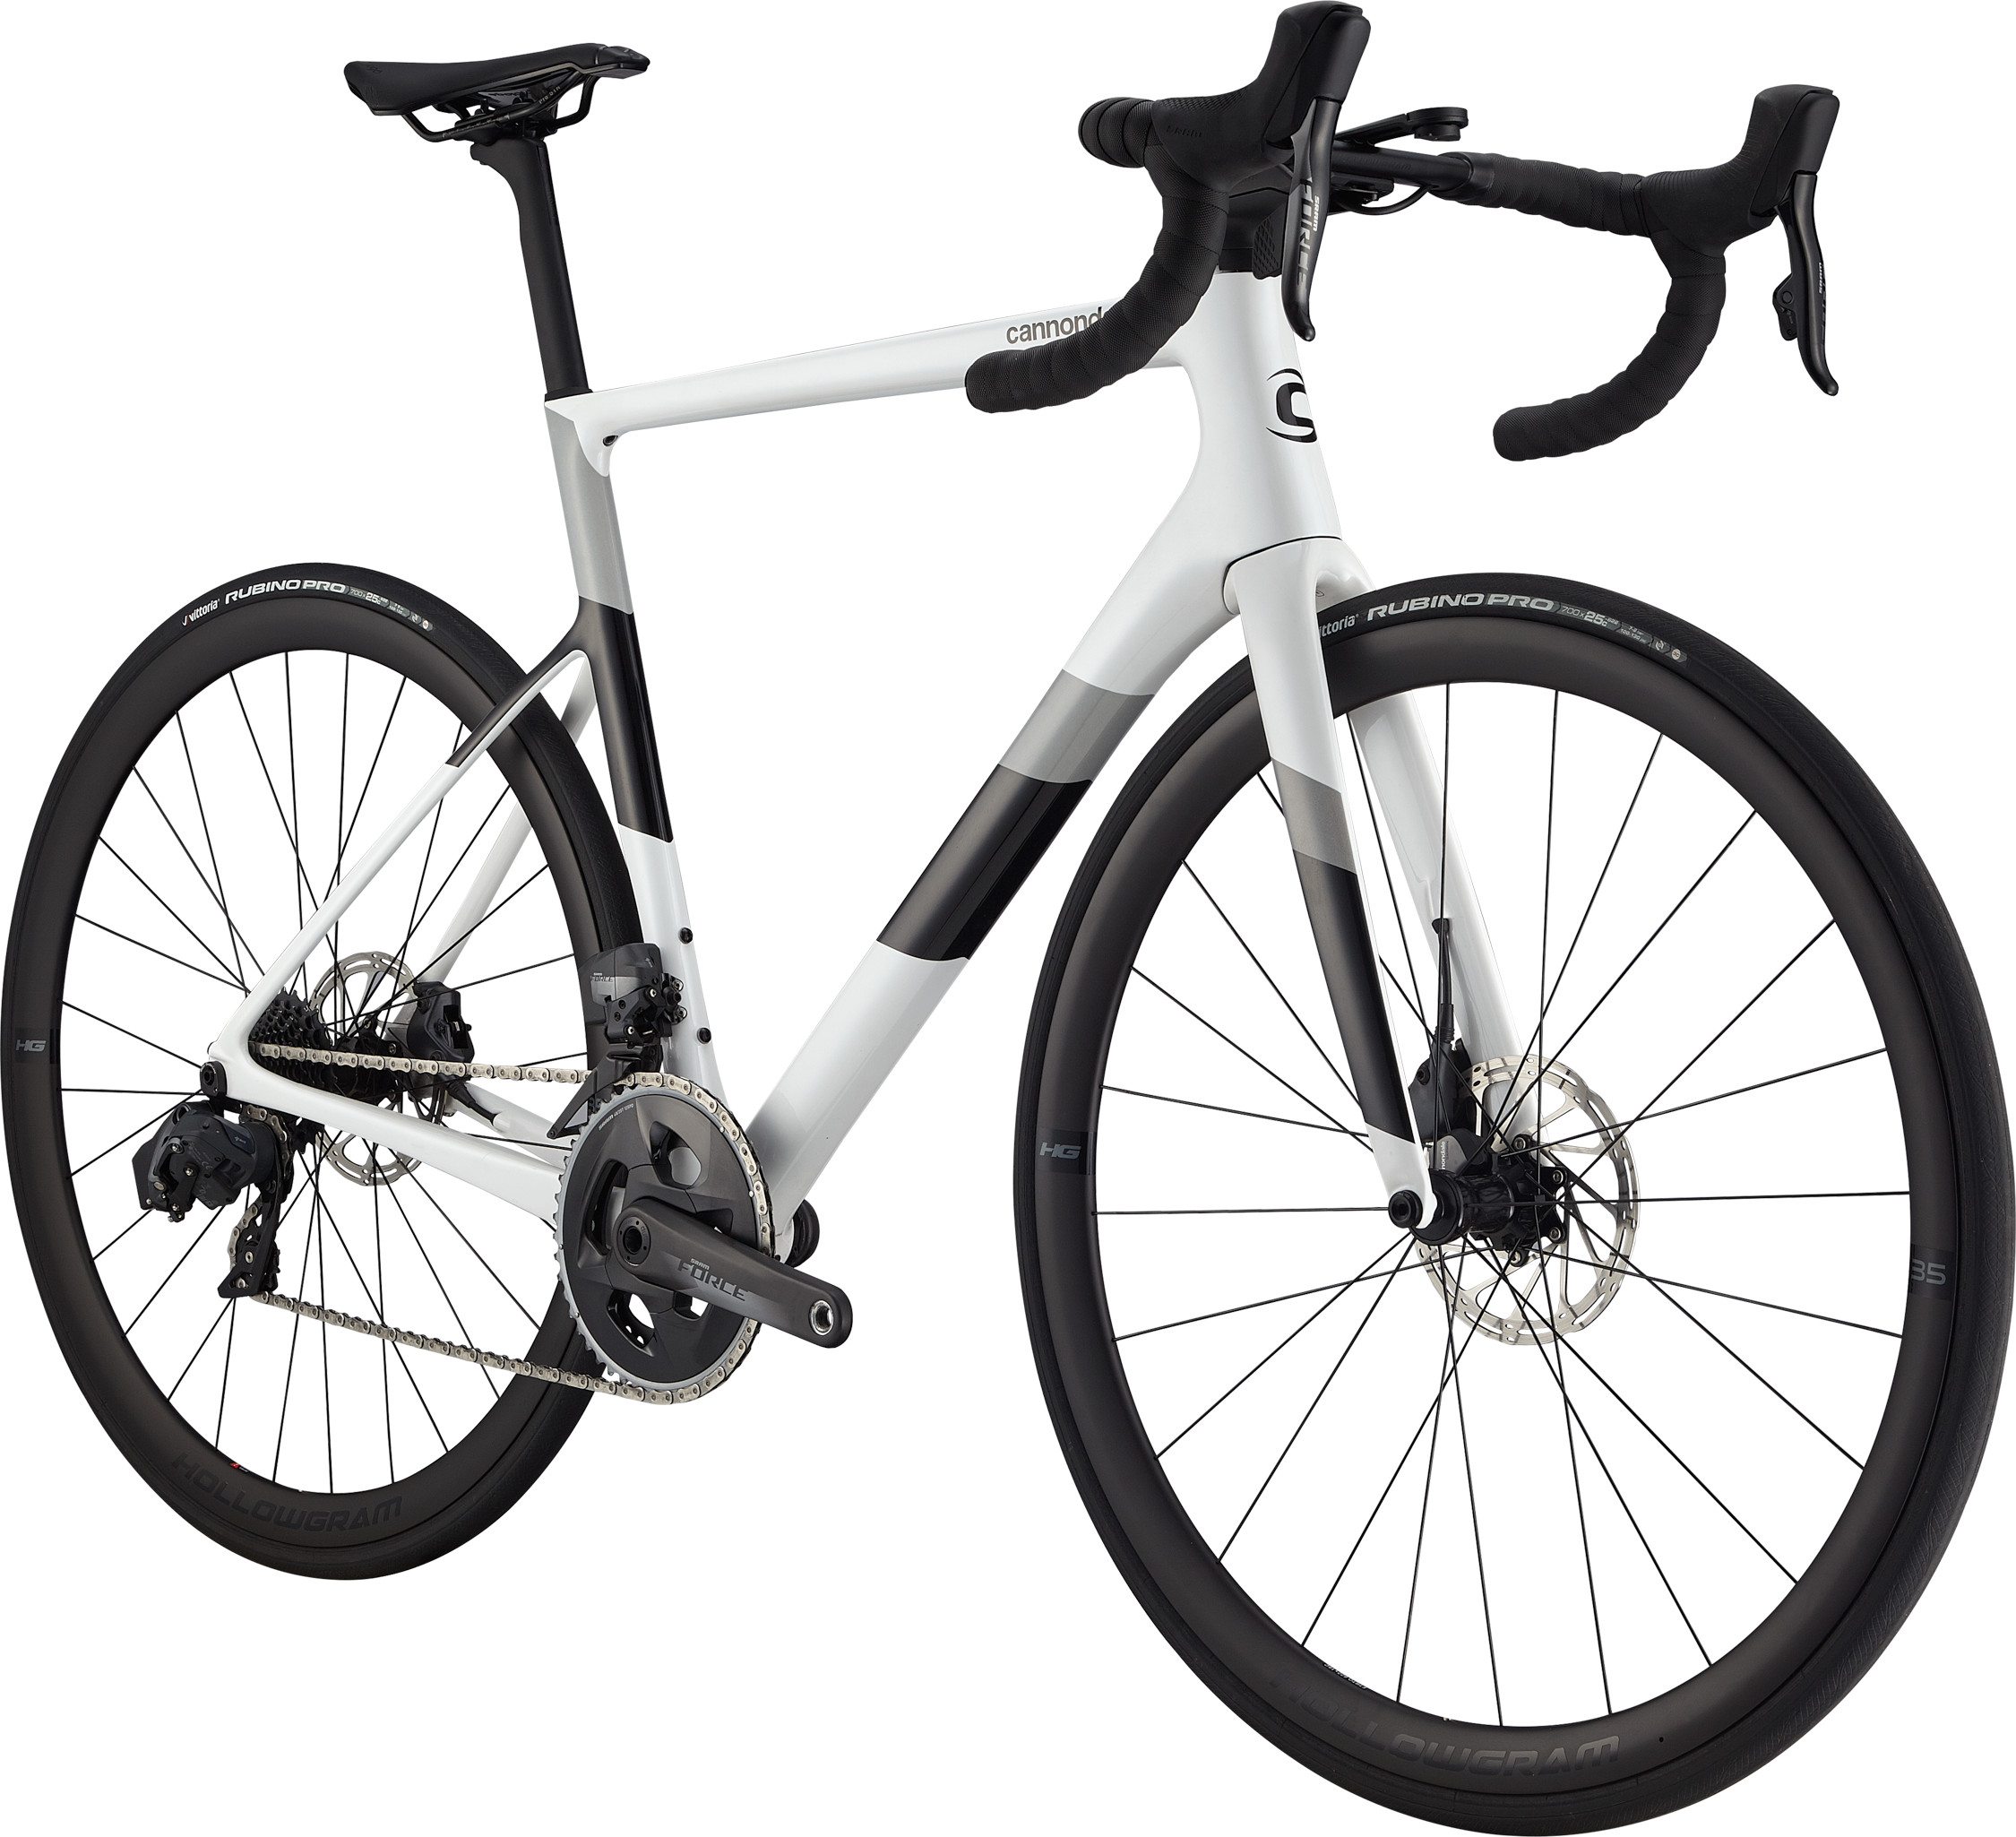 Cannondale-SuperSix-Evo-Crb-Disc-Force-eTap-CAS-3Q-2020